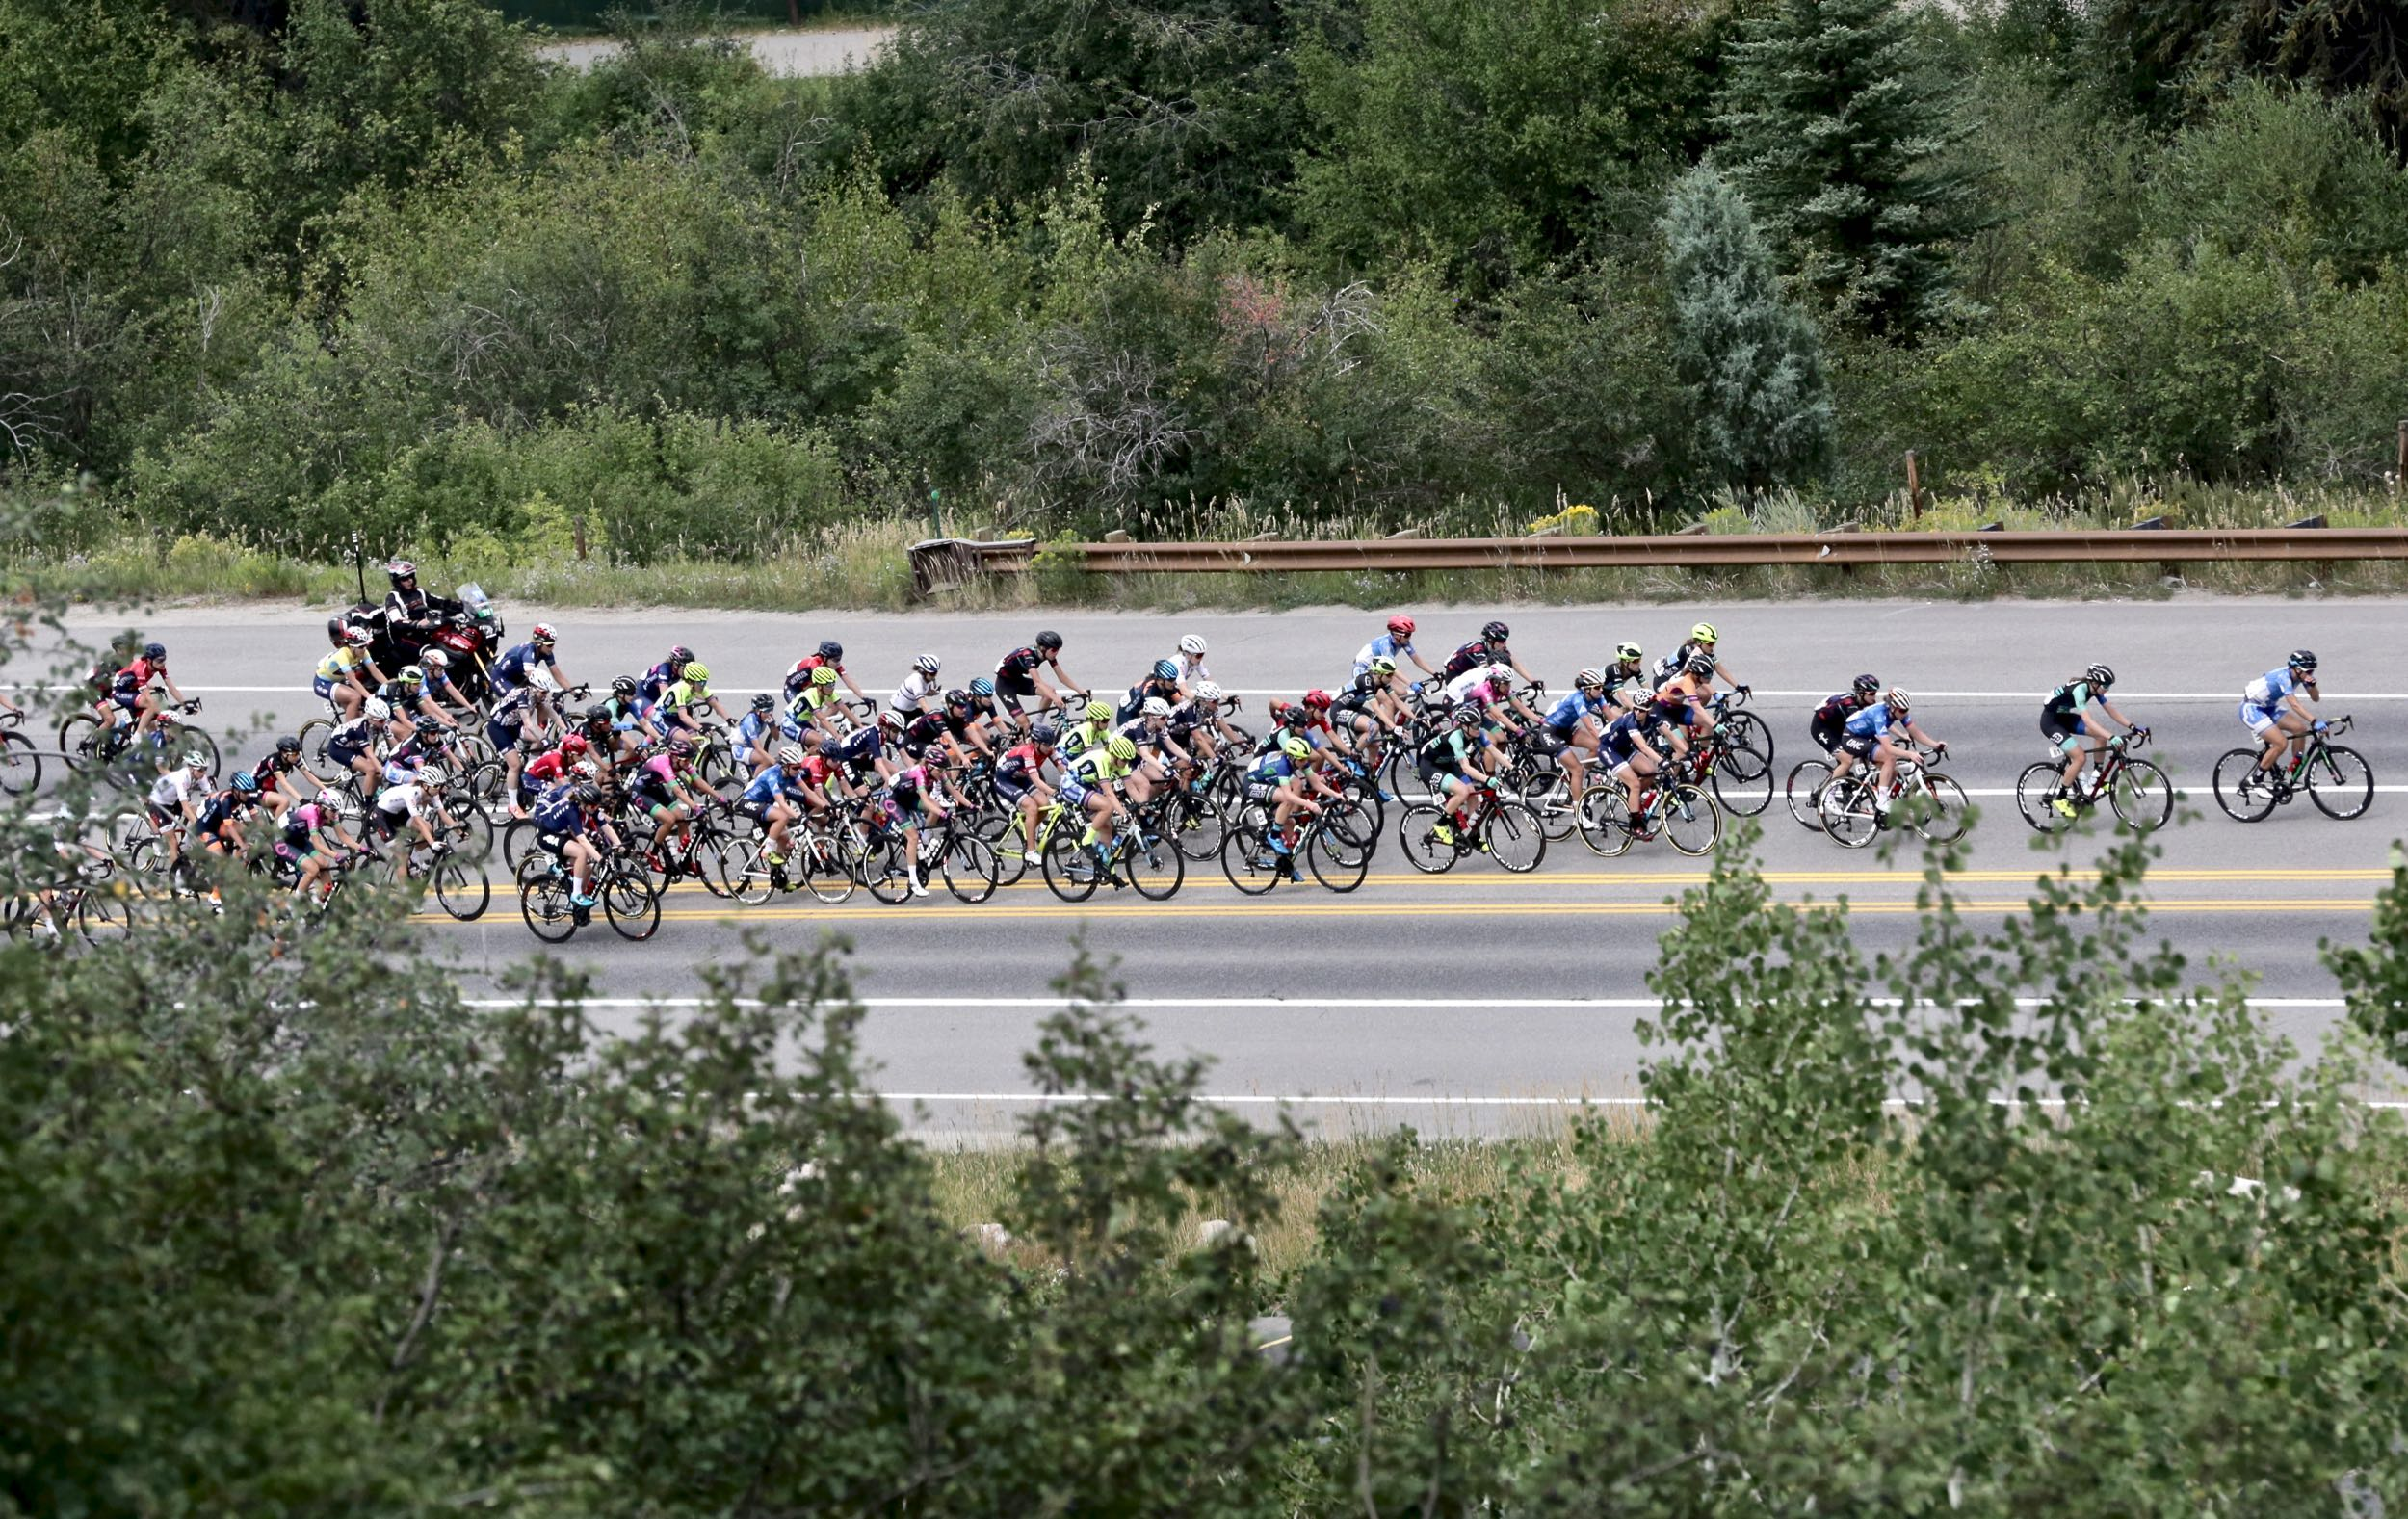 American Chloe Dygert-Owen claimed four top spots Saturday Aug. 23 at the Colorado Classic bicycle race's second stage in Avon: the stage winner, overall race leader, sprint winner and queen of the mountain.